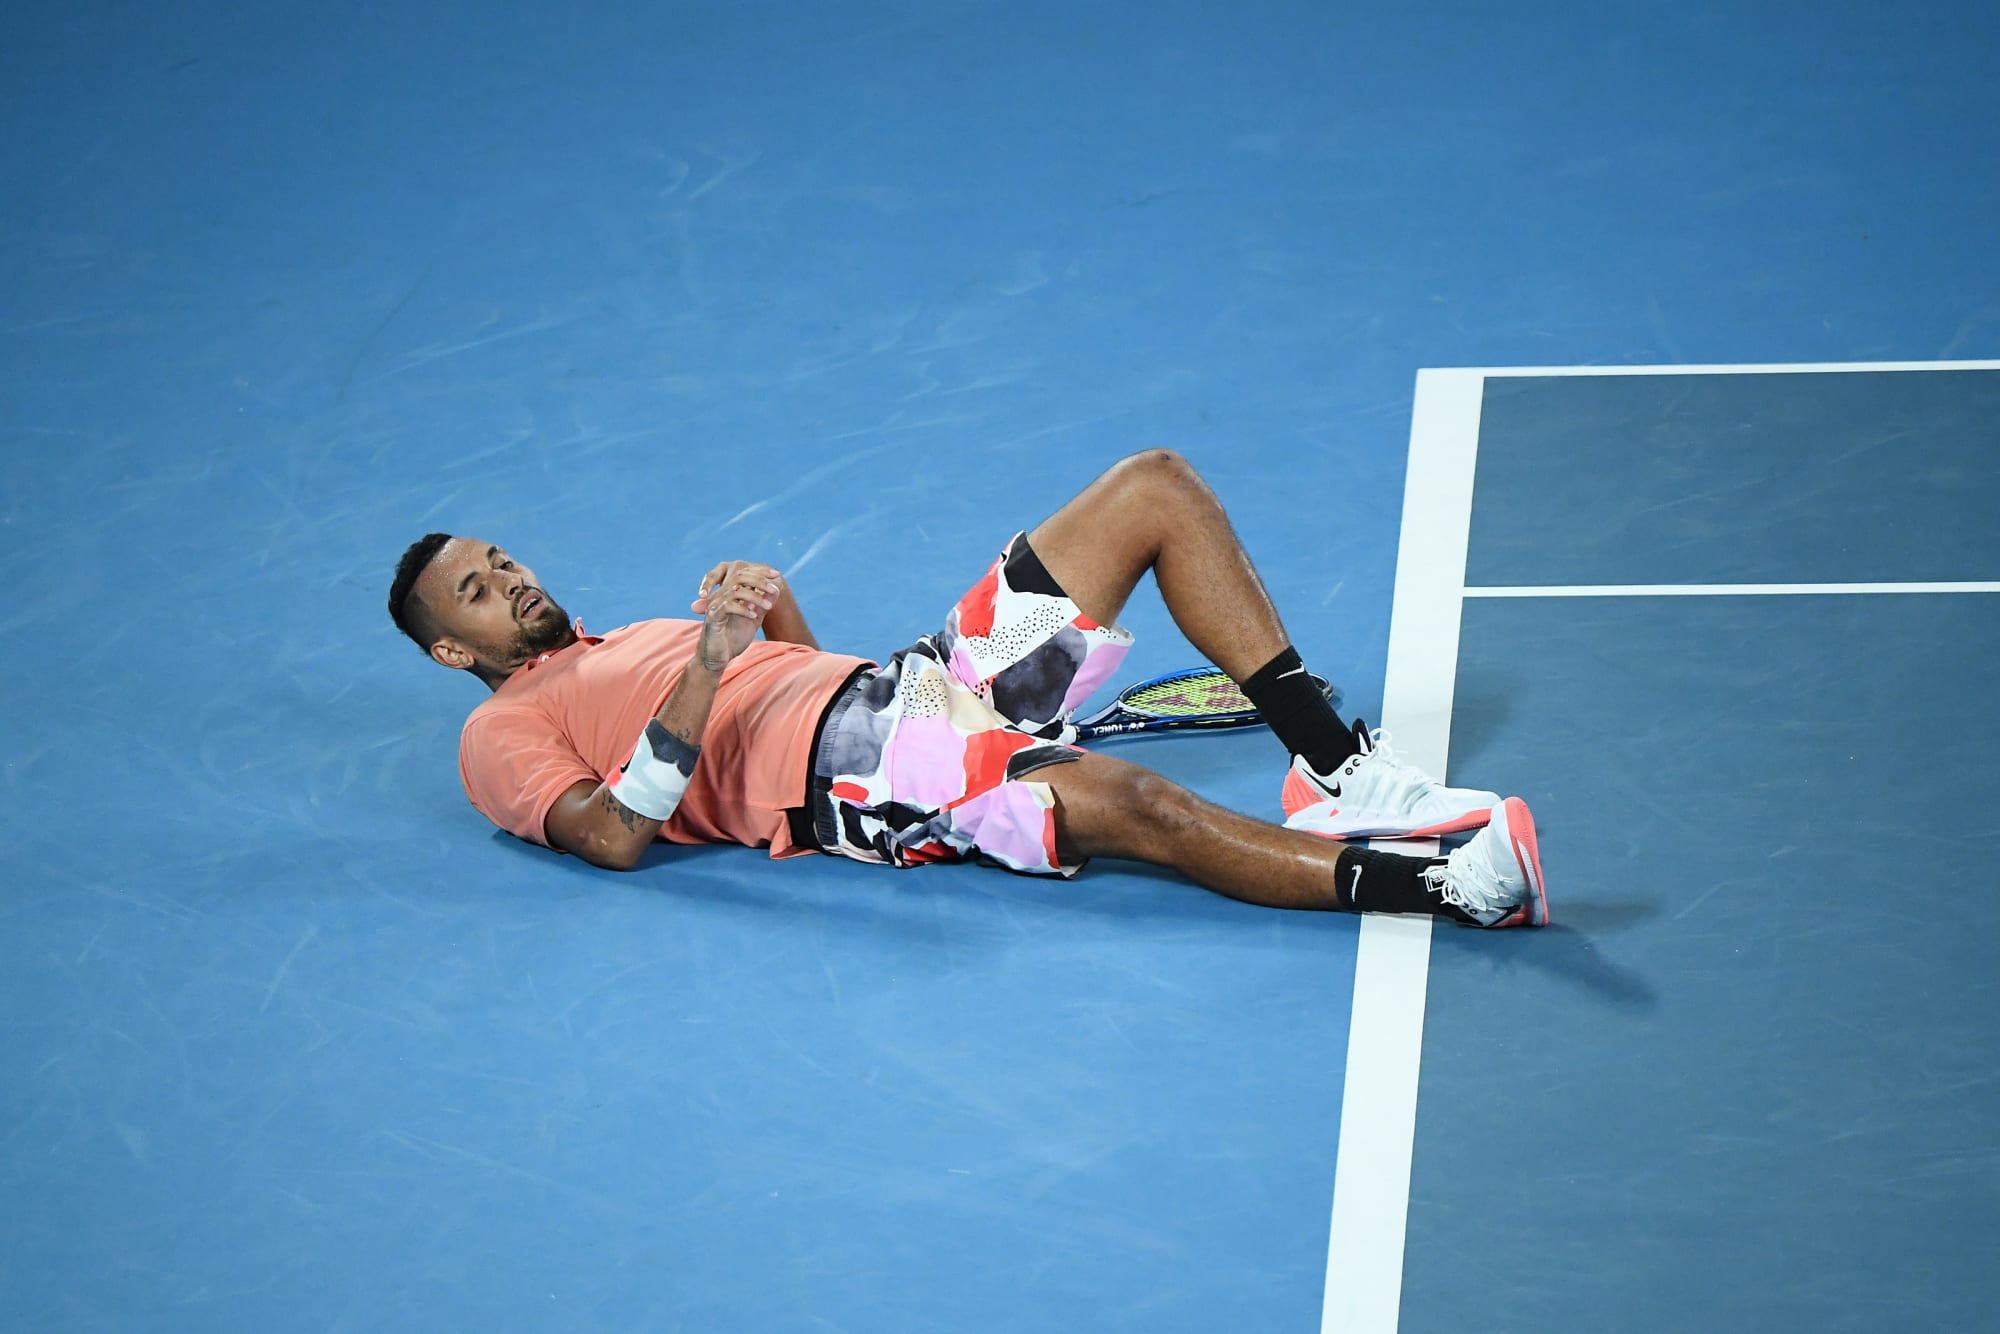 For Better or Worse: The Nick Kyrgios Dilemma